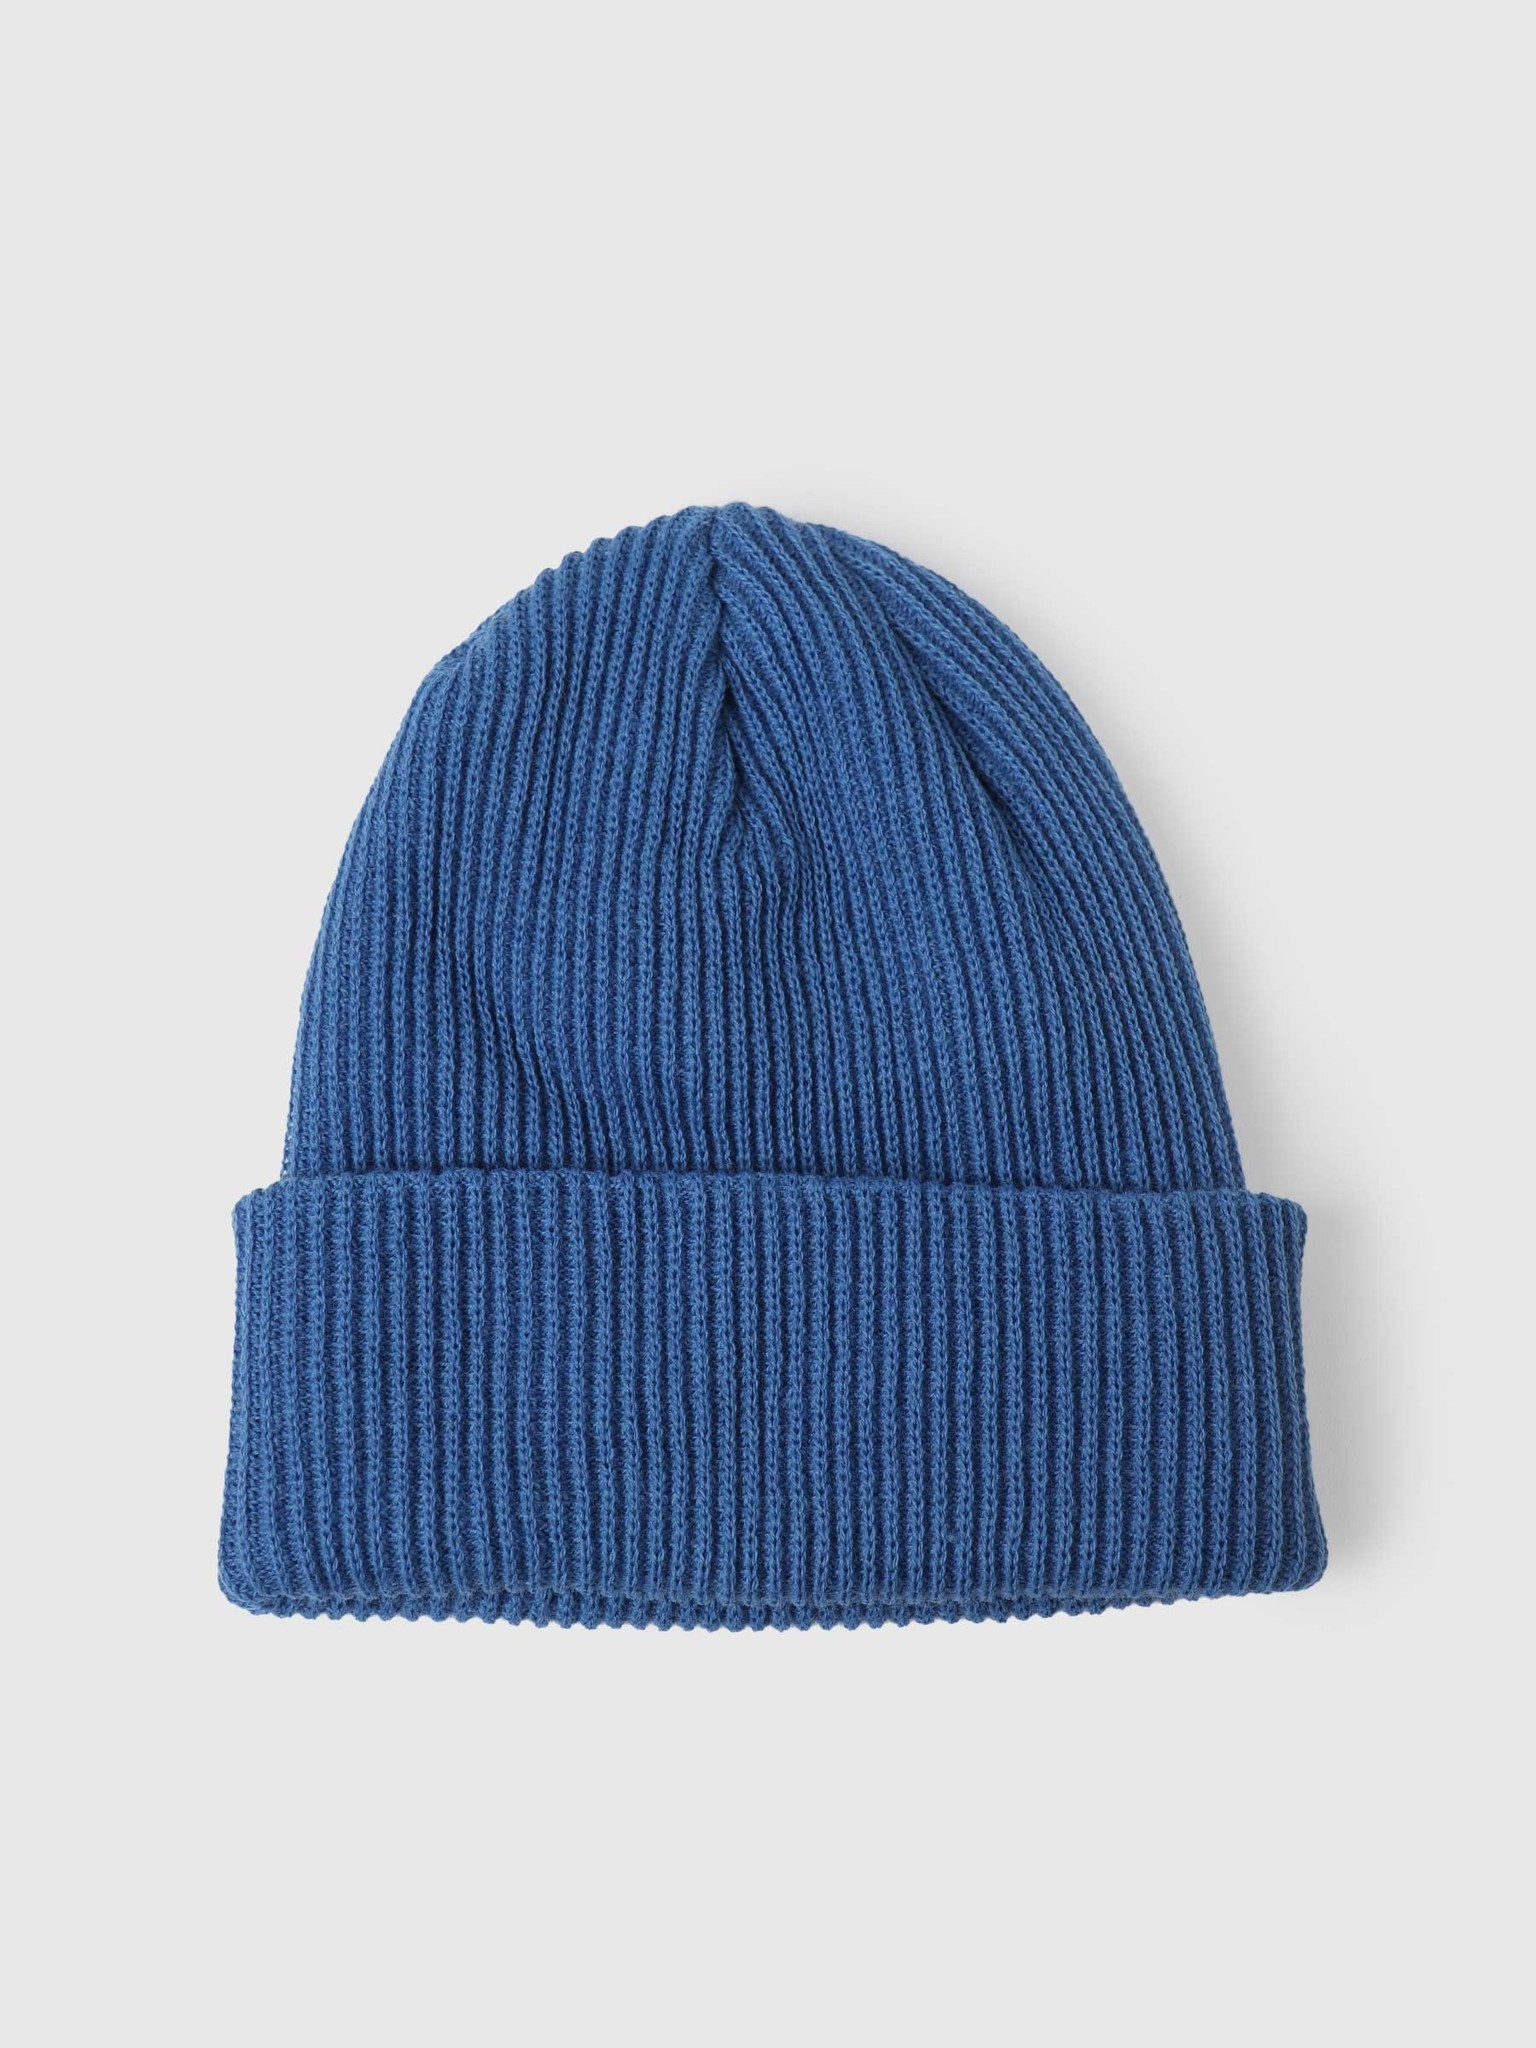 Stussy Stussy Small Patch Watchcap Beanie Blue 132988-0801